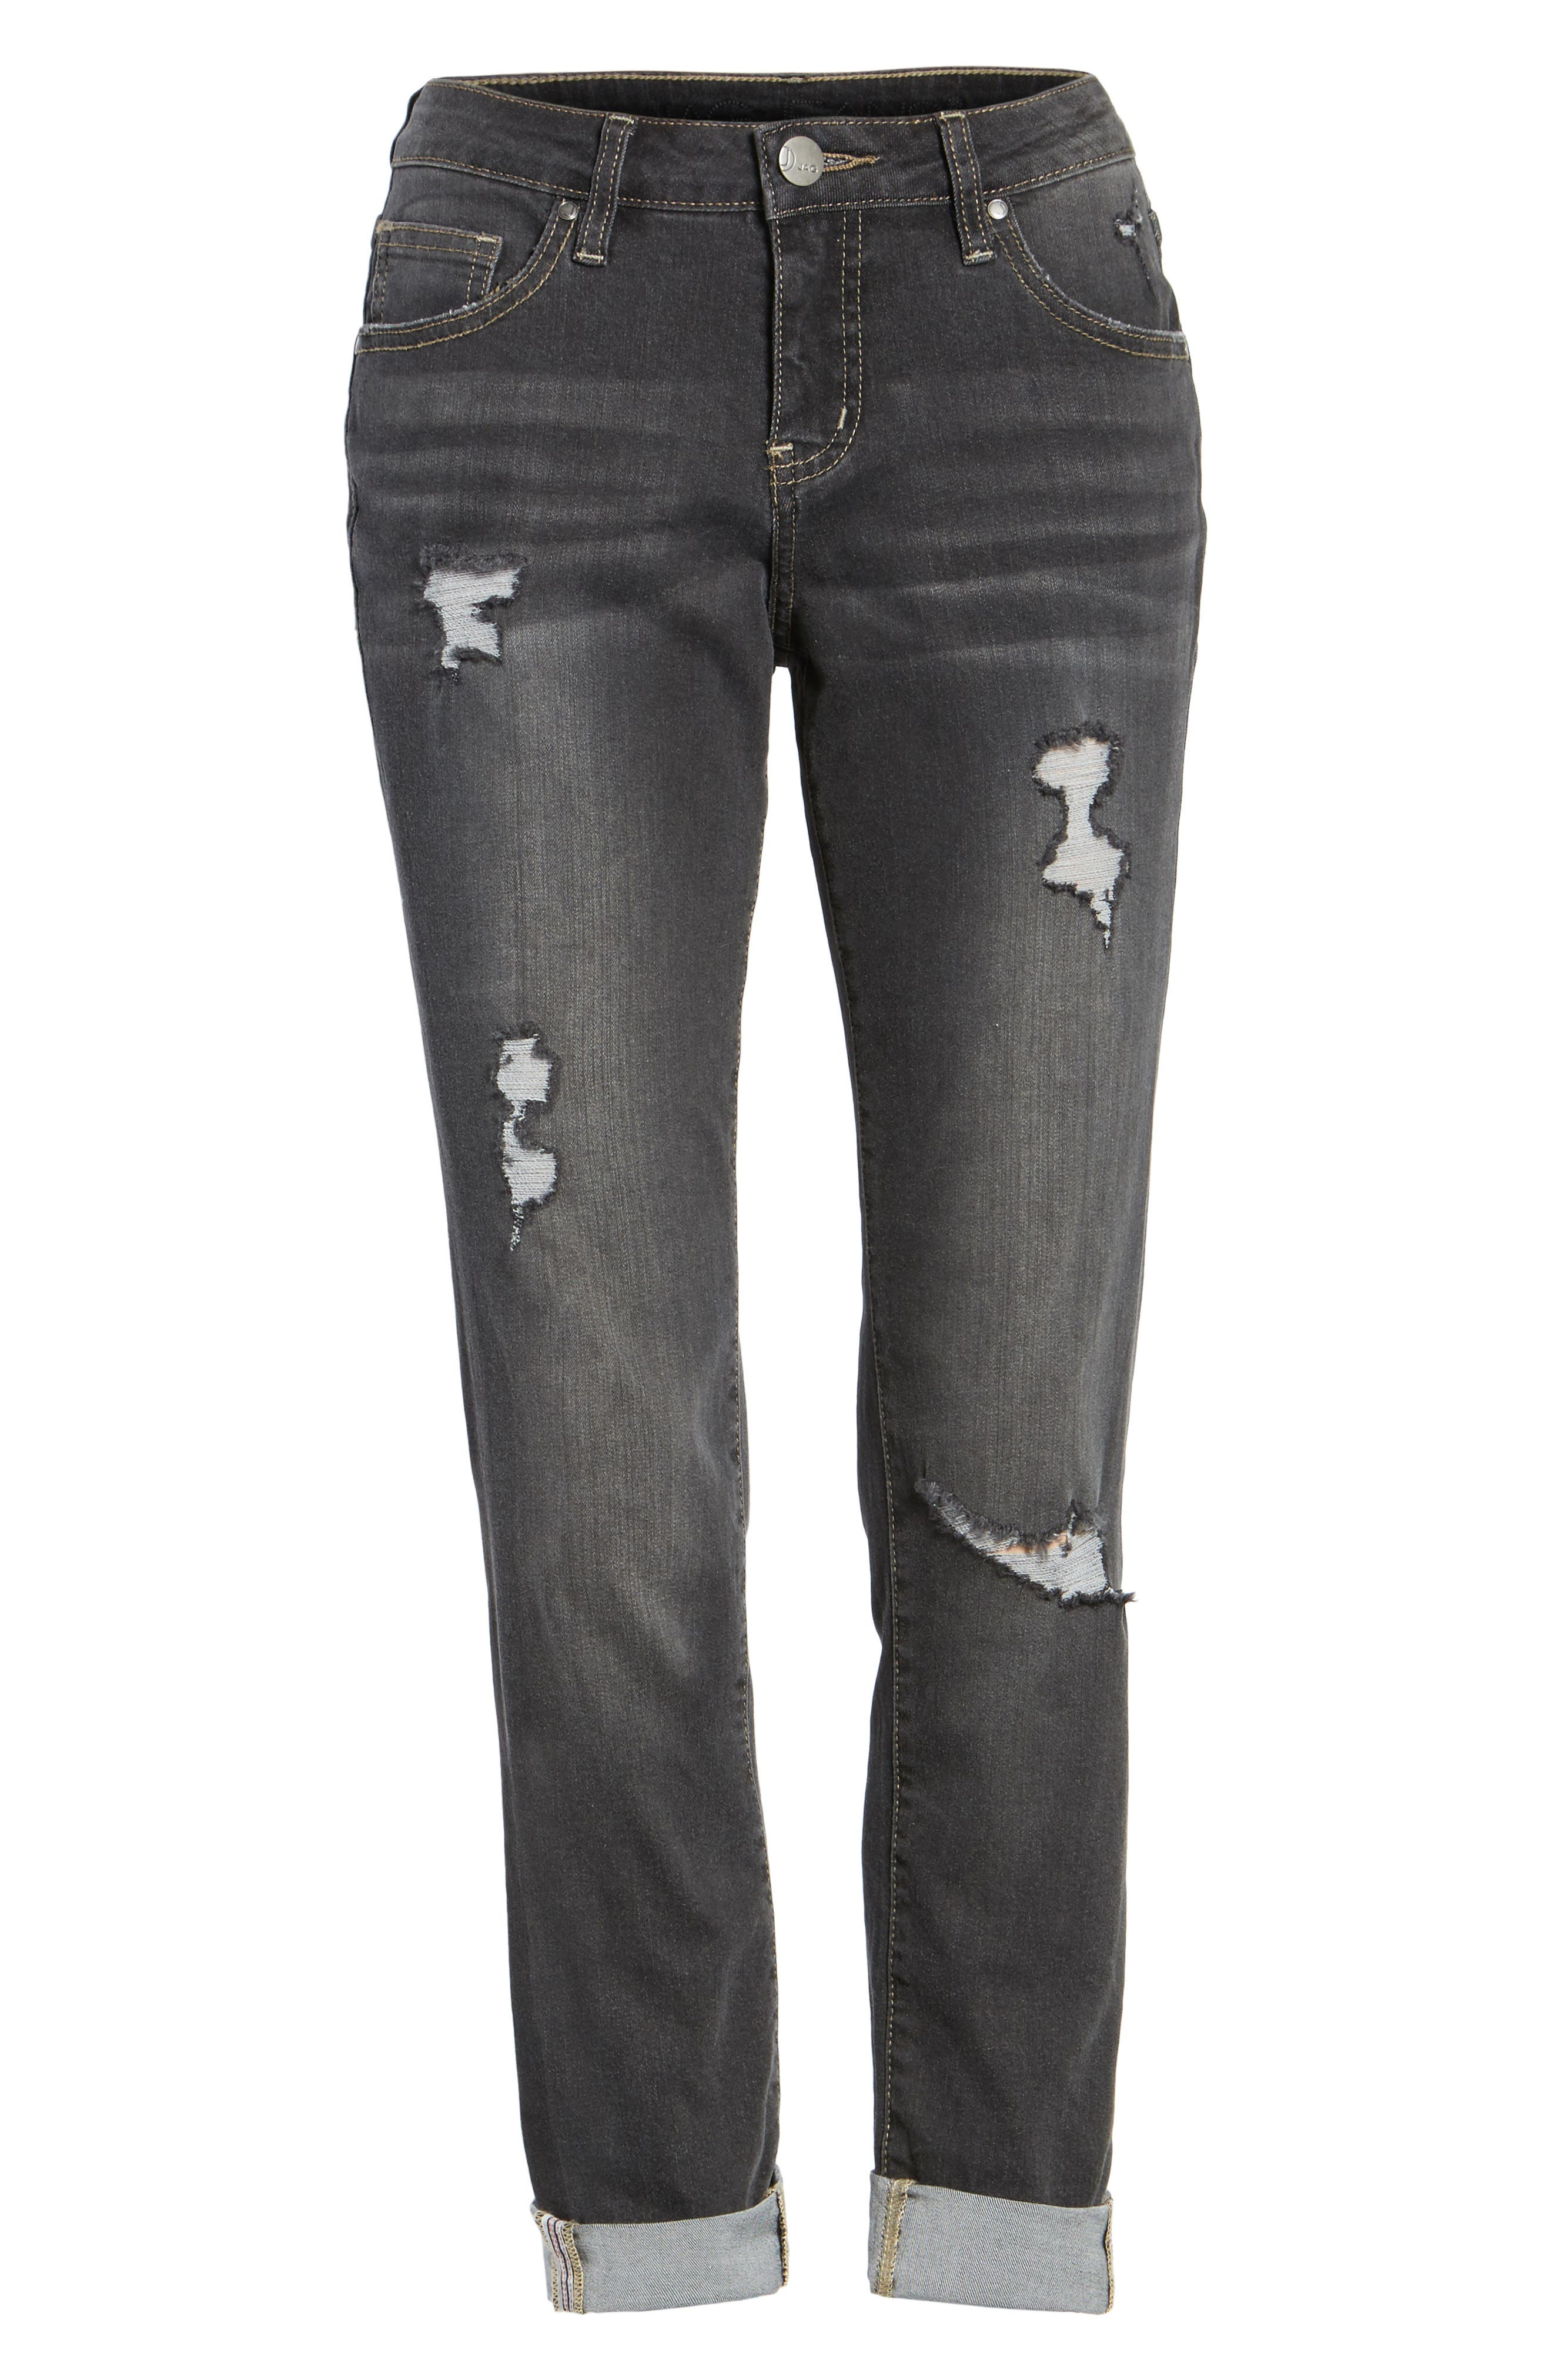 Carter Cuffed Girlfriend Jeans,                             Alternate thumbnail 6, color,                             DARK GREY